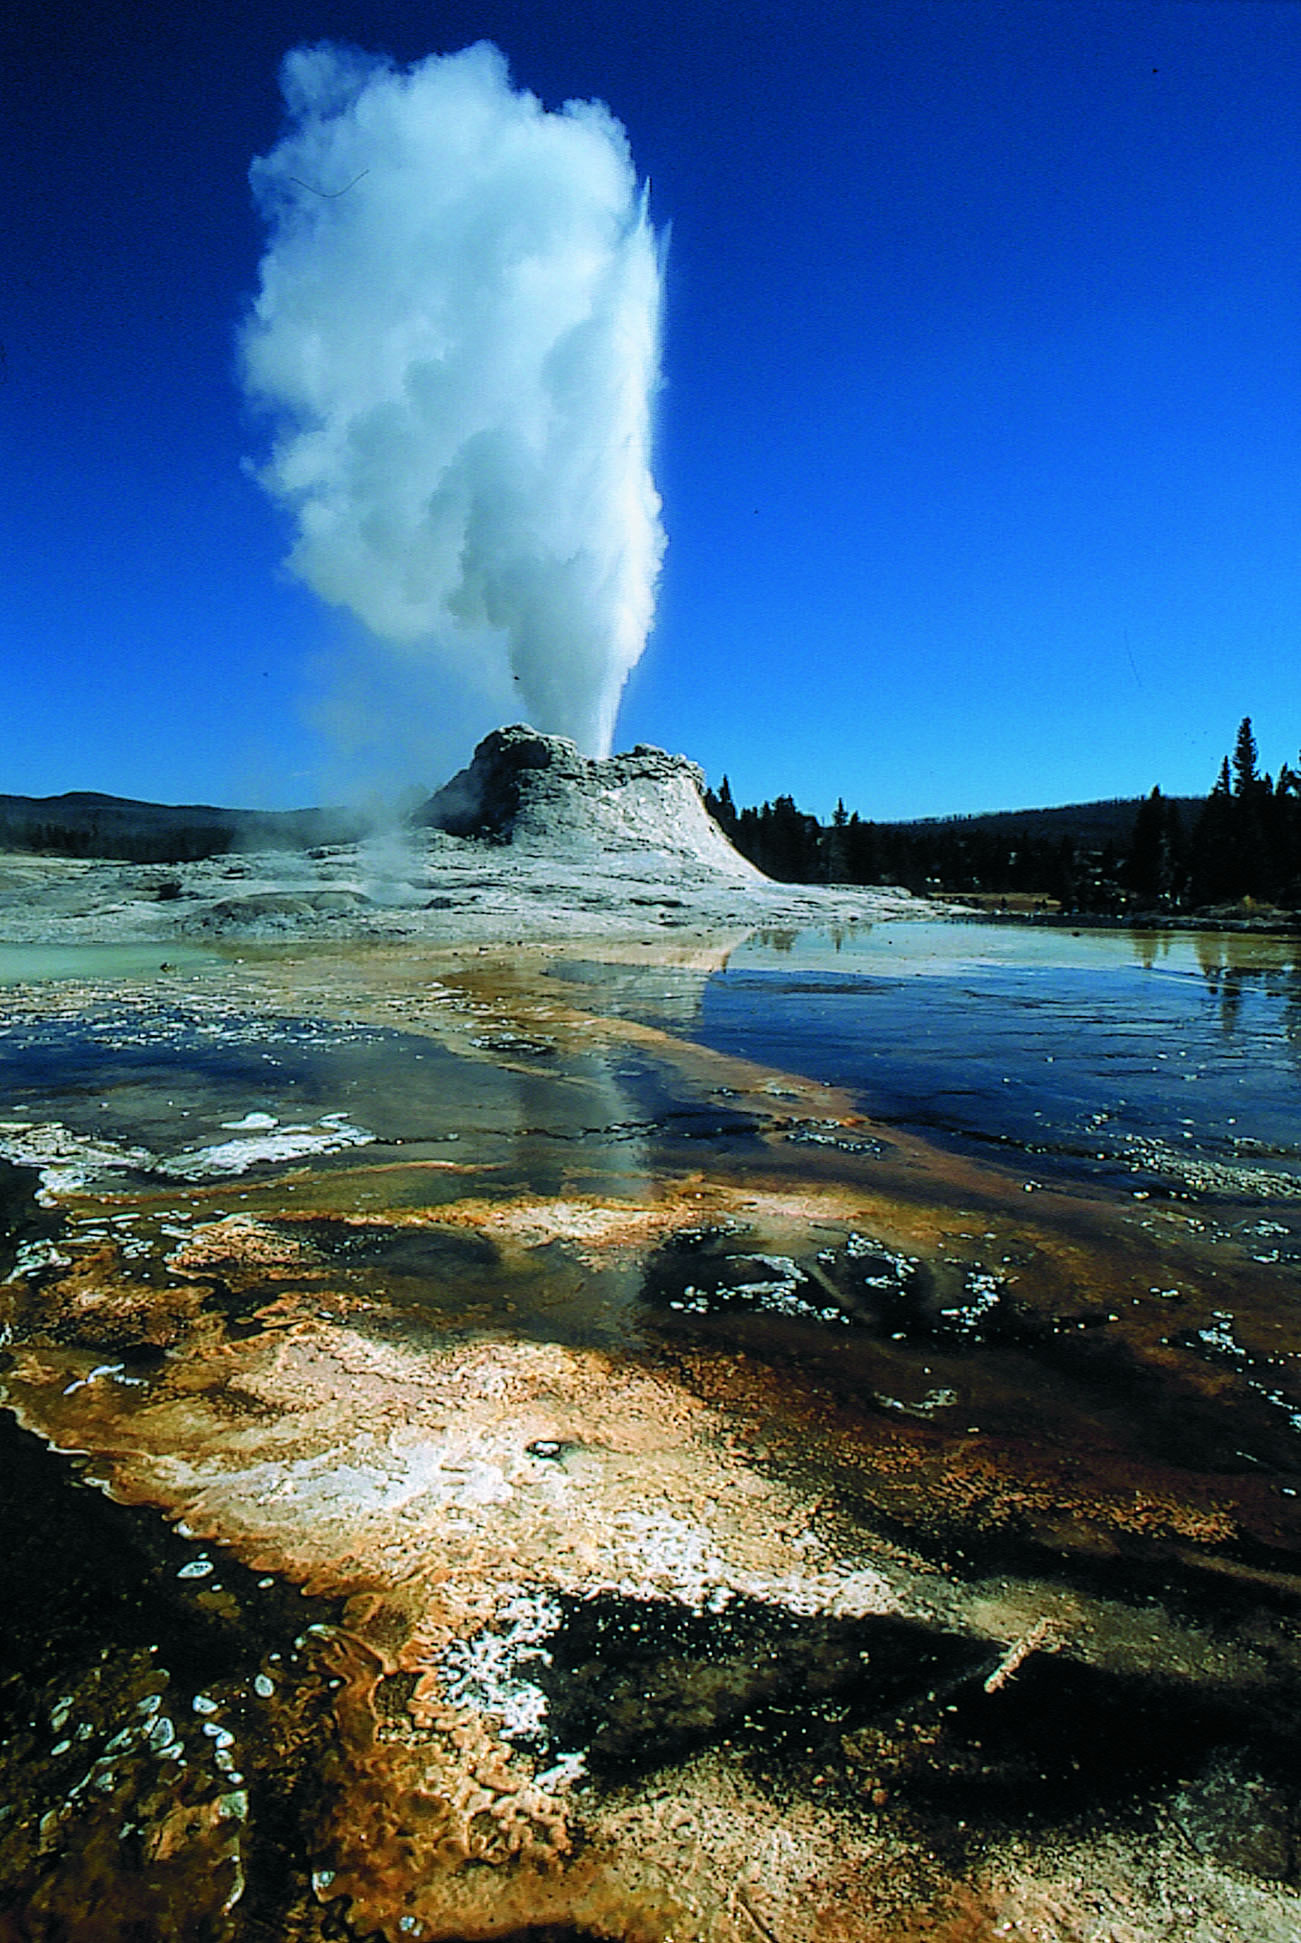 Castle Geyser at Yellowstone National Park, Wyo., erupted less frequently after seismic waves from a powerful earthquake almost 2,000 miles away in Alaska rippled through Yellowstone in November 2002. Some geysers erupted more often, others less often in the wake of the magnitude 7.9 Denali fault earthquake.